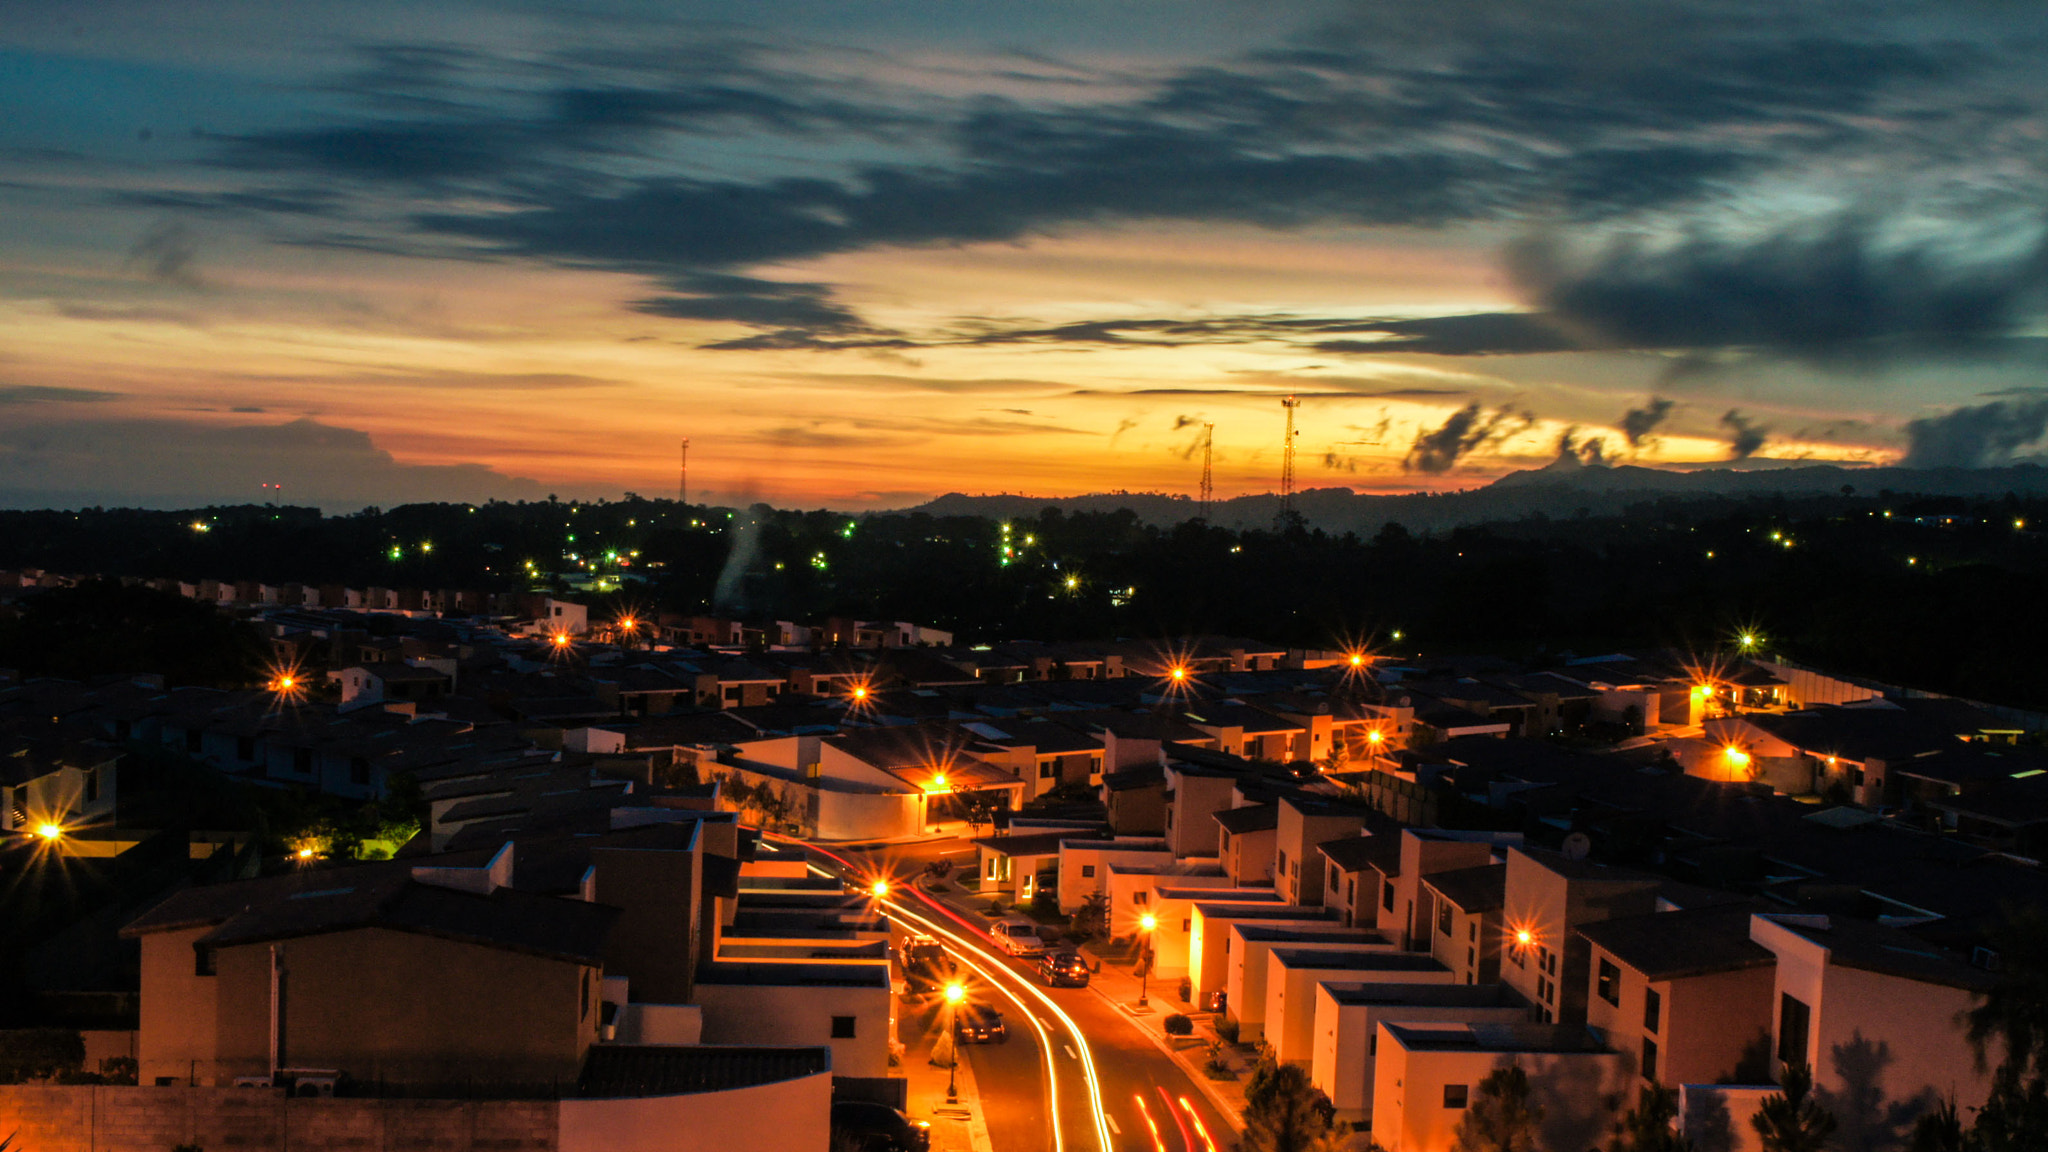 Photograph In the suburbs by Erick Chévez Rivera on 500px